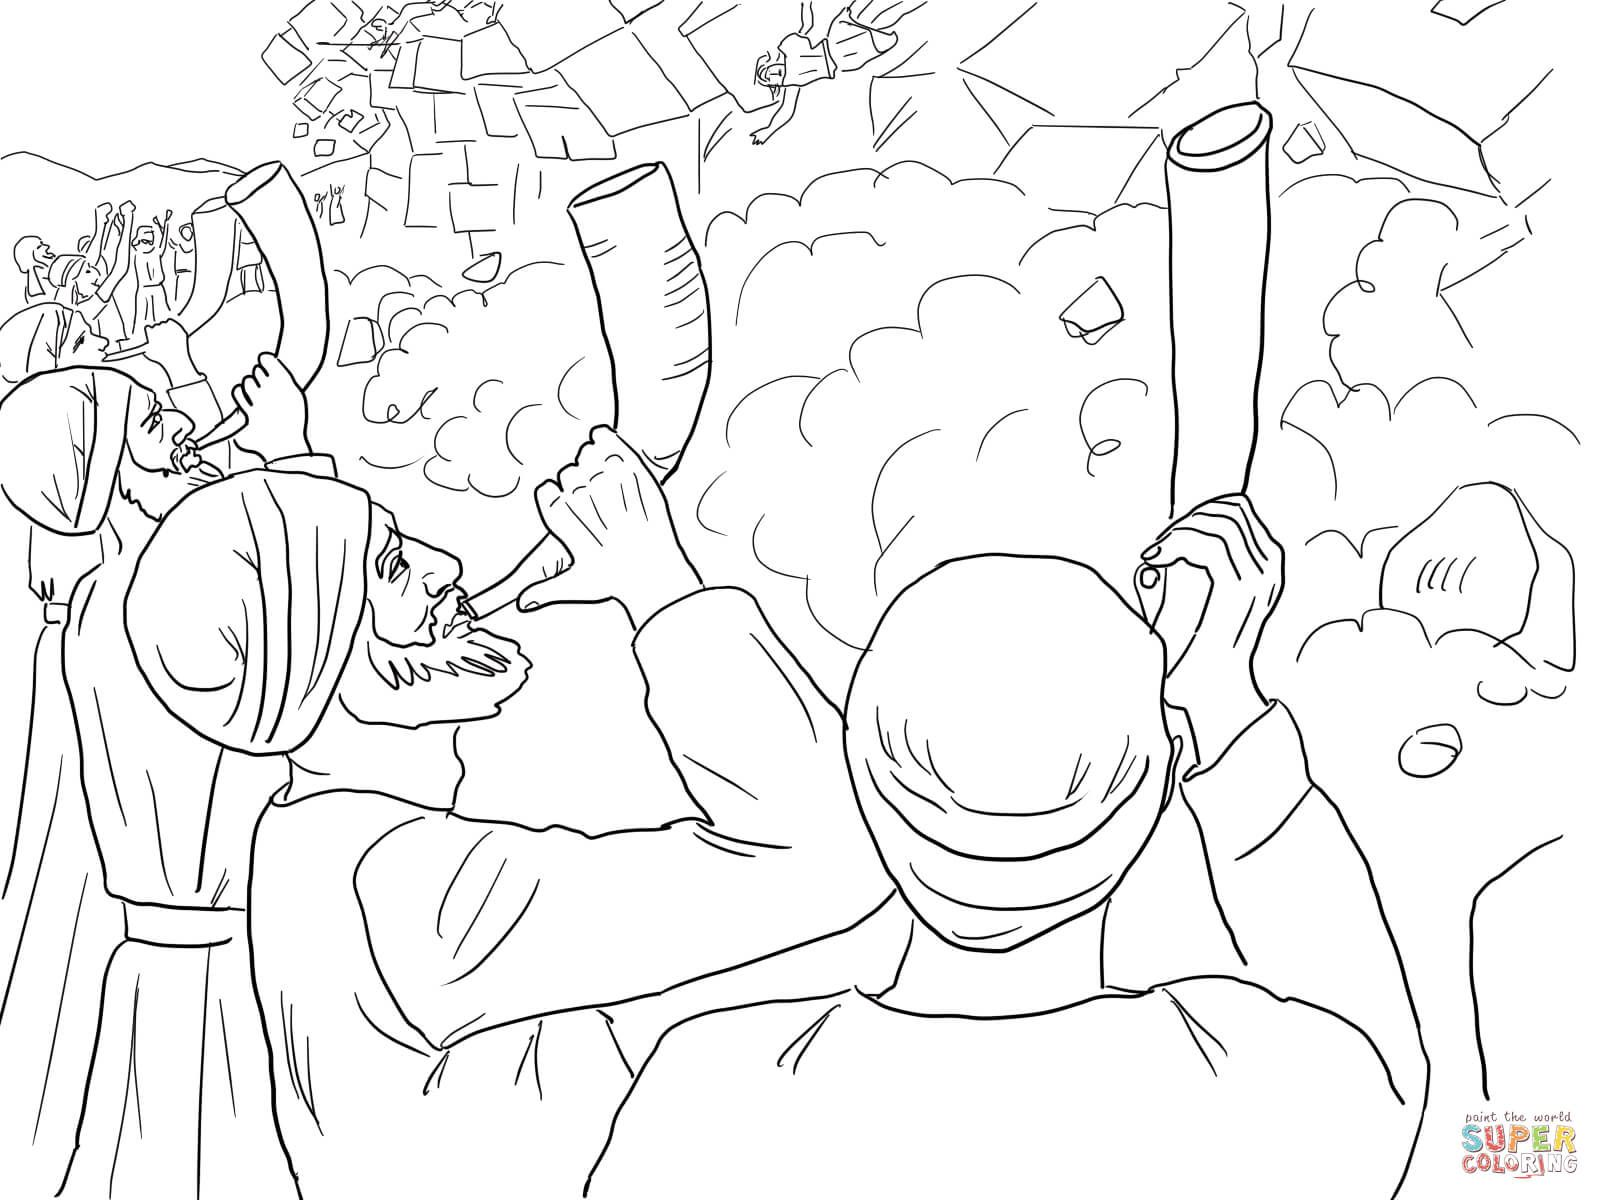 jericho walls coloring page joshua fought the battle of jericho coloring pages walls coloring jericho page